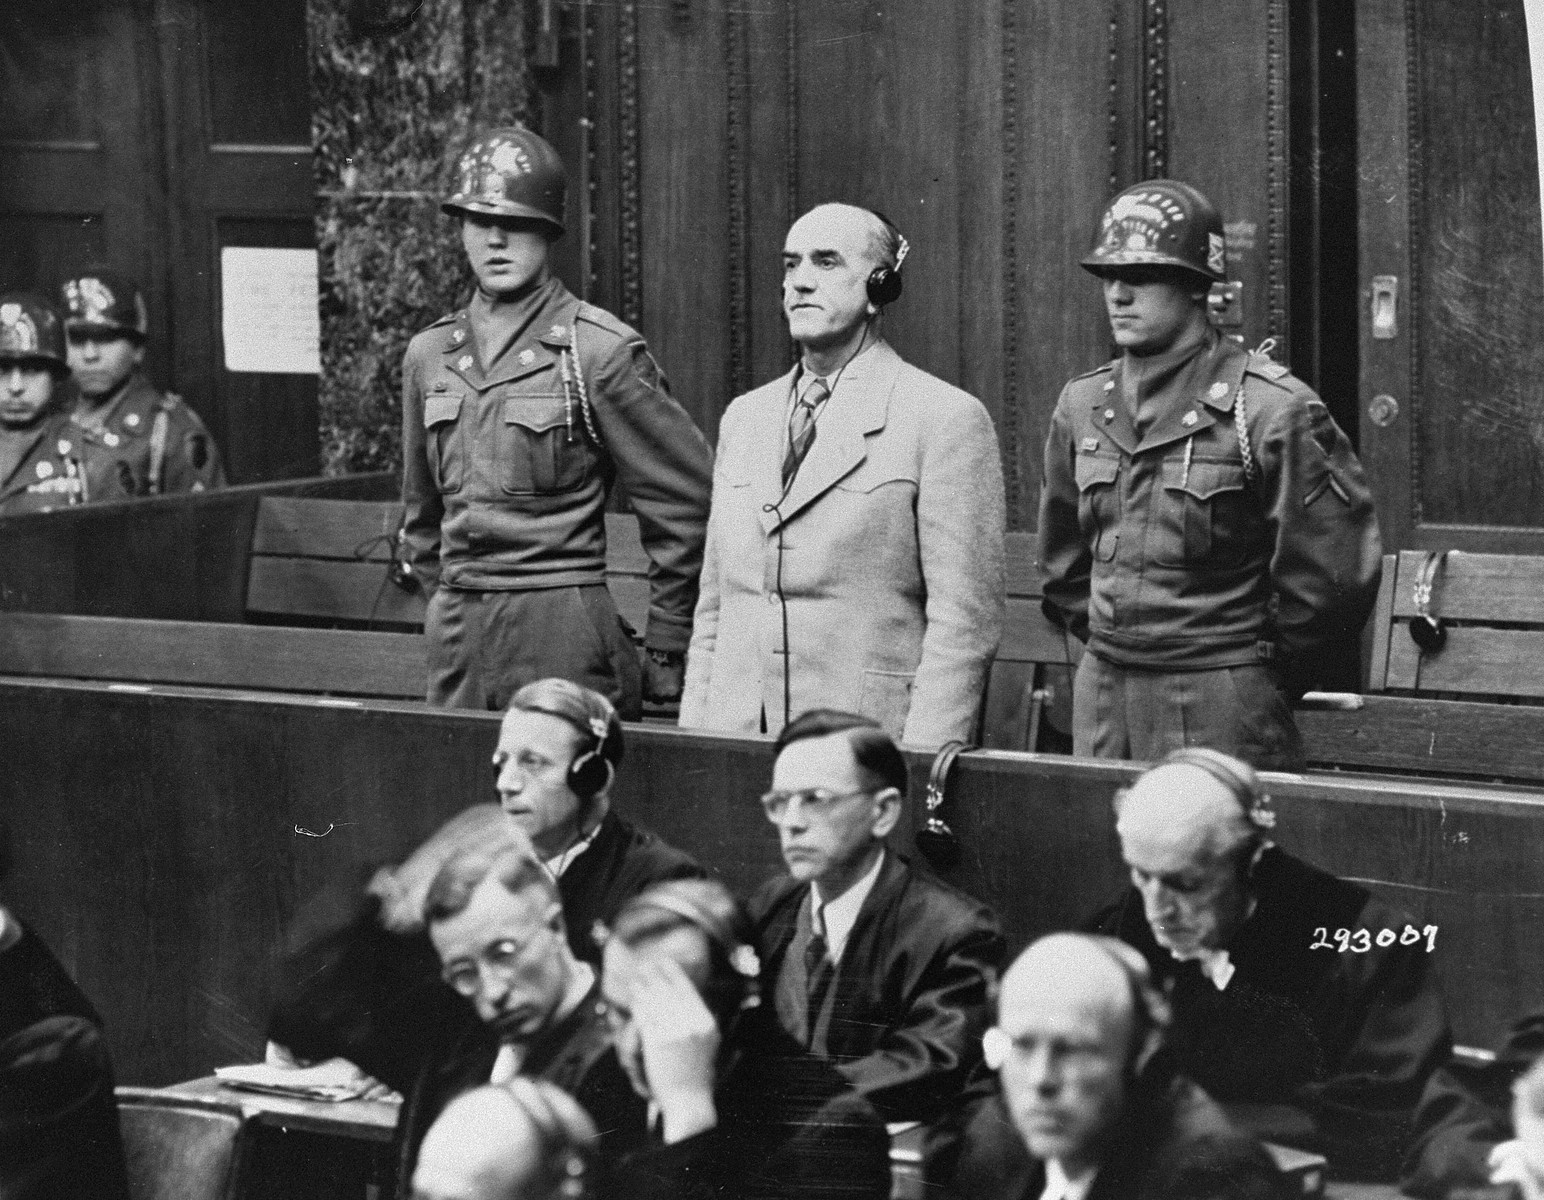 Defendant Oswald Pohl, a former SS Obergruppenfuehrer and general in the Waffen-SS, is sentenced to death by hanging by the Military Tribunal II at the Pohl/WVHA trial.